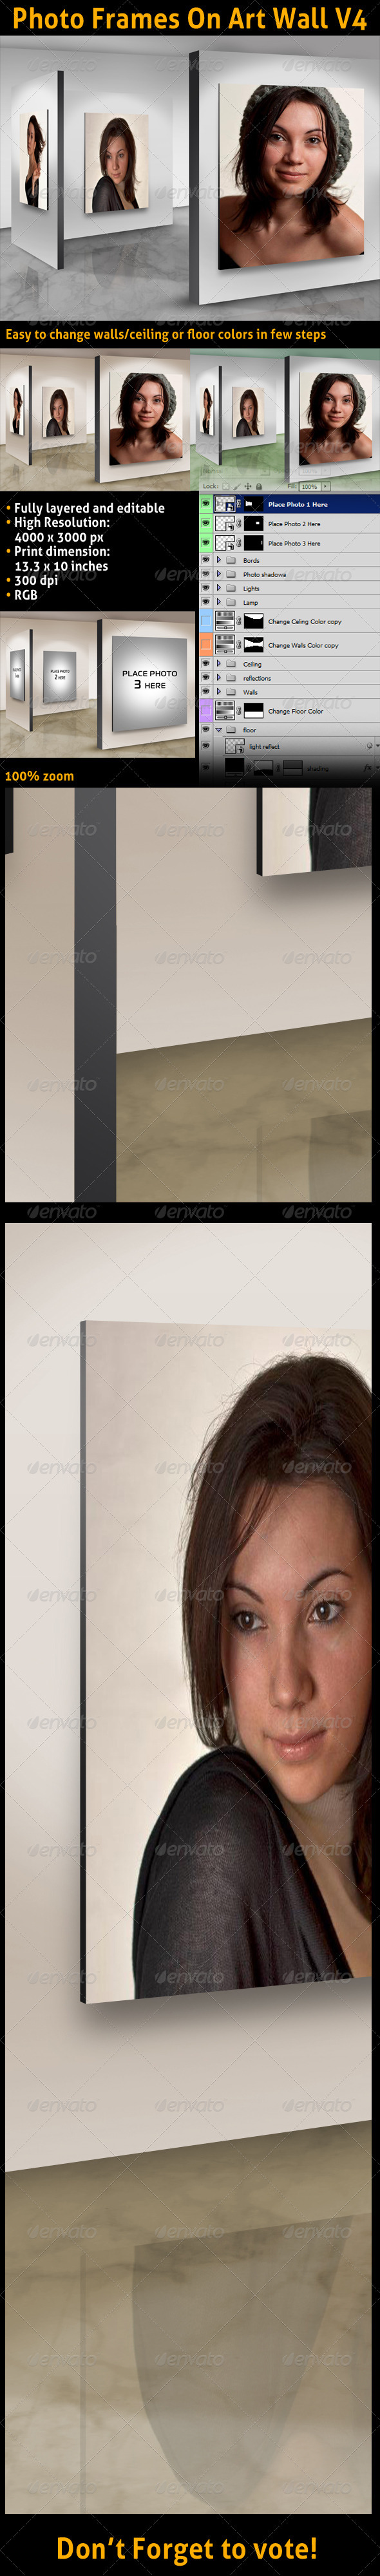 GraphicRiver Photo Frames On Art Wall V4 3405588